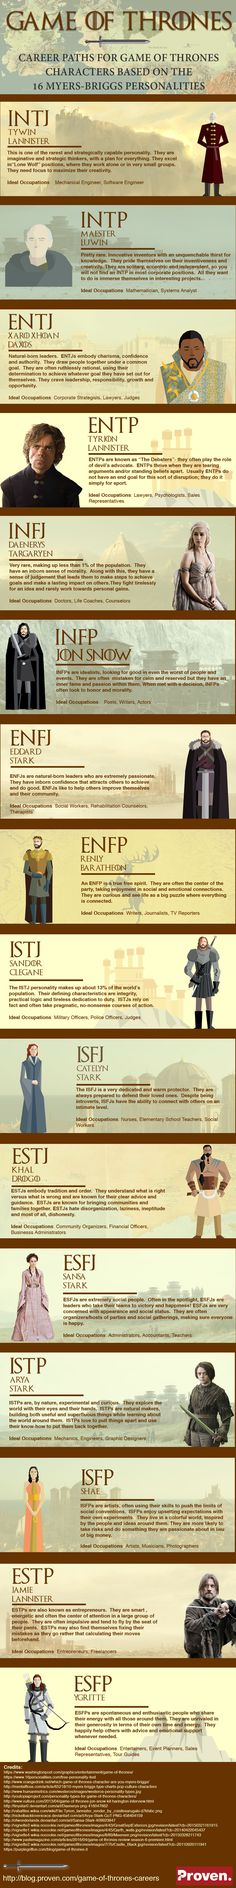 Based on Myers Briggs Personality Types